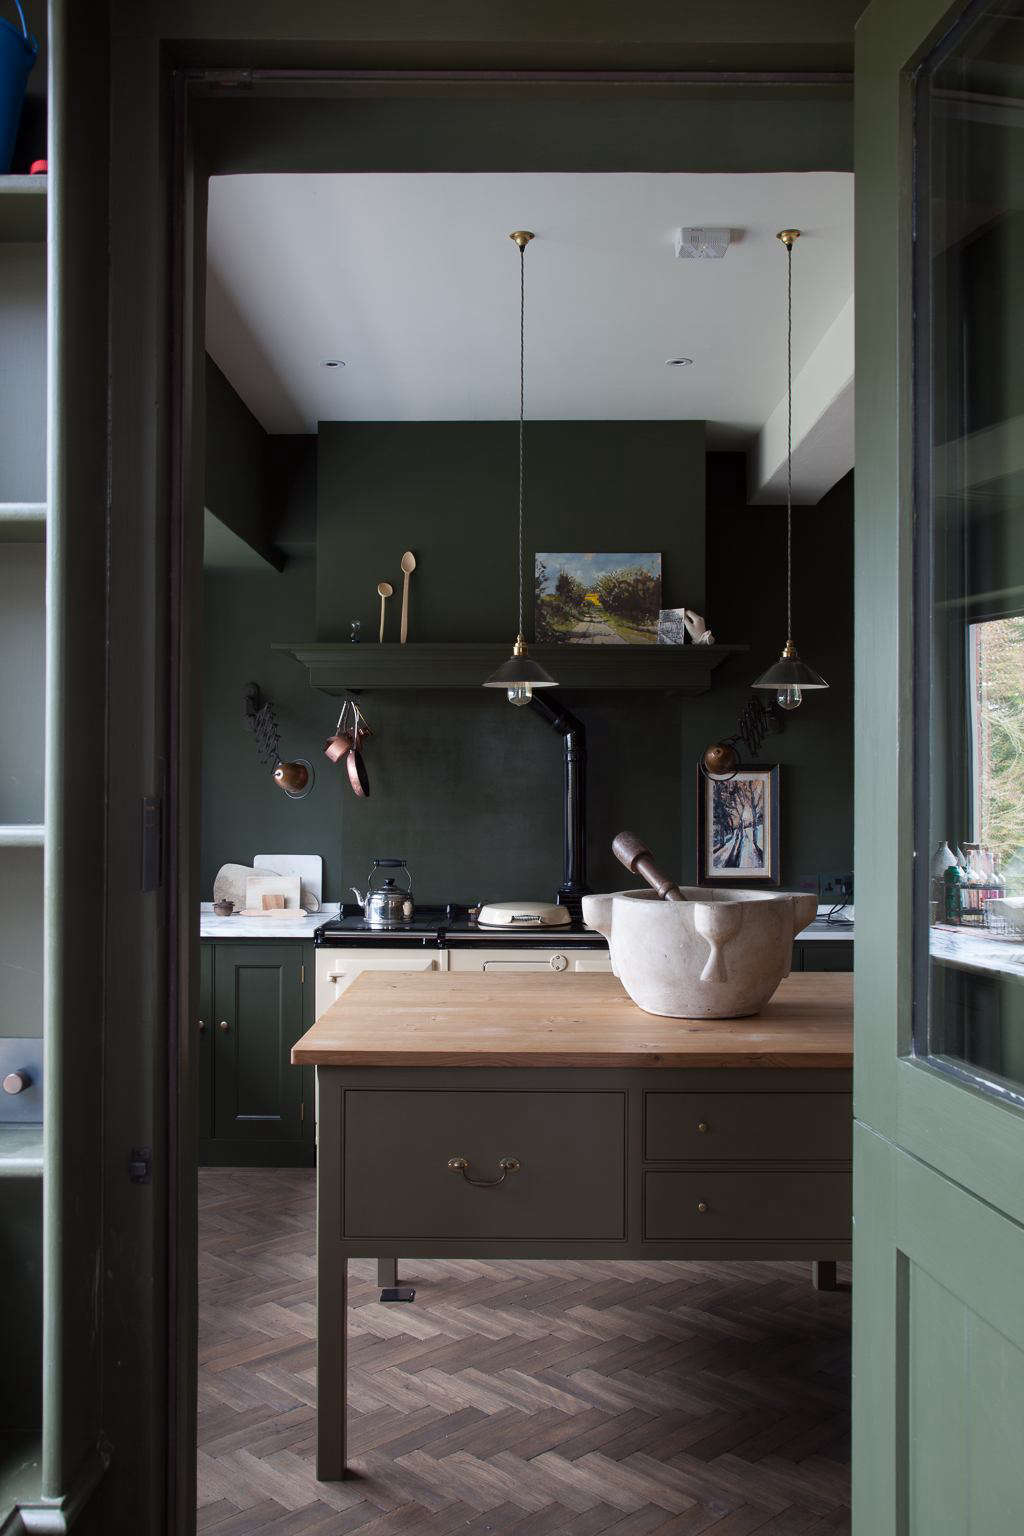 Tucked inside a circa 1890 farmhouse in Shropshire, England, this Plain English kitchen has walls, cabinetry, and doors painted in the same color: the brand's own Army Camp Green. See the rest in Kitchen of the Week: A Historic Kitchen in Shropshire, Recast in Monochrome Green. Photograph courtesy of Plain English.